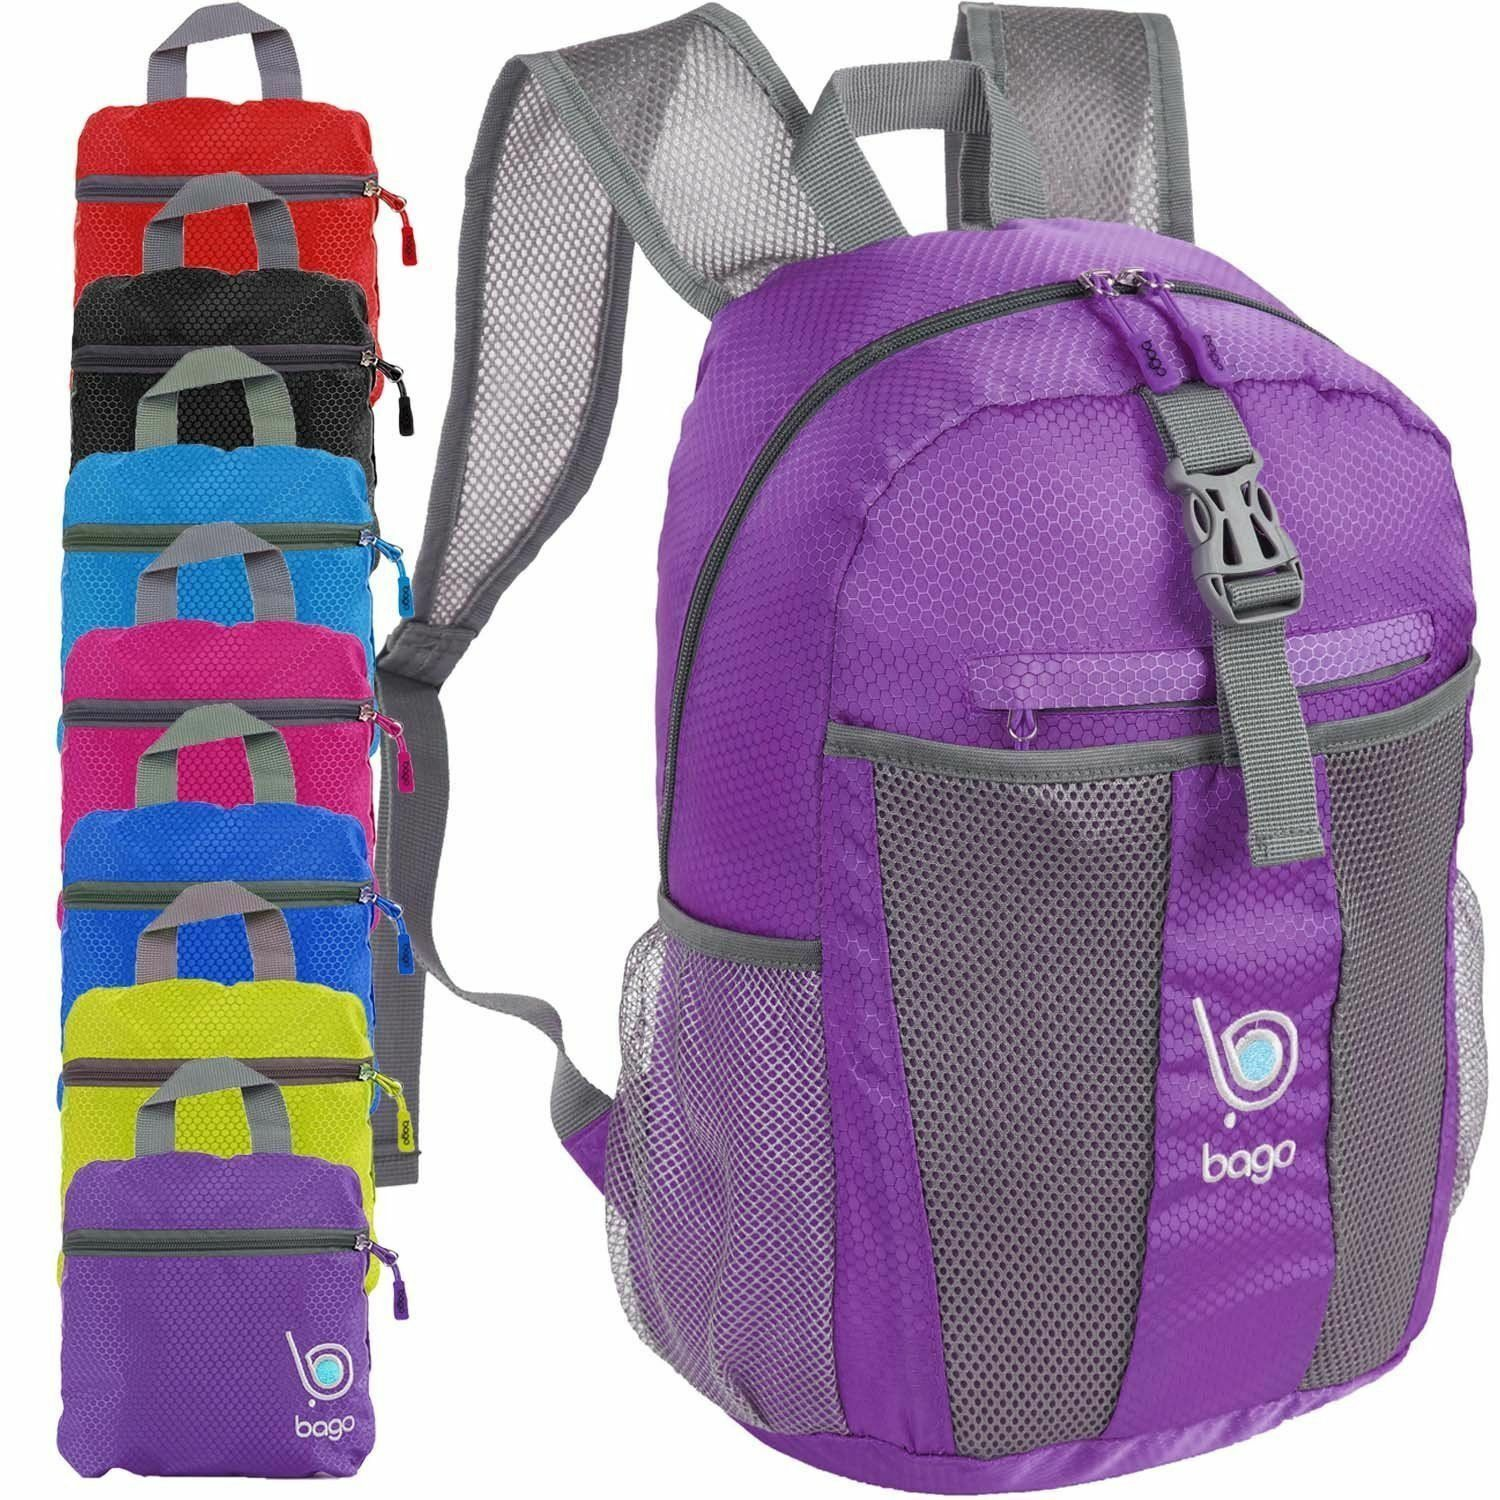 Lightweight Foldable Backpack for Travel and Sport - 25L Collapsible ...